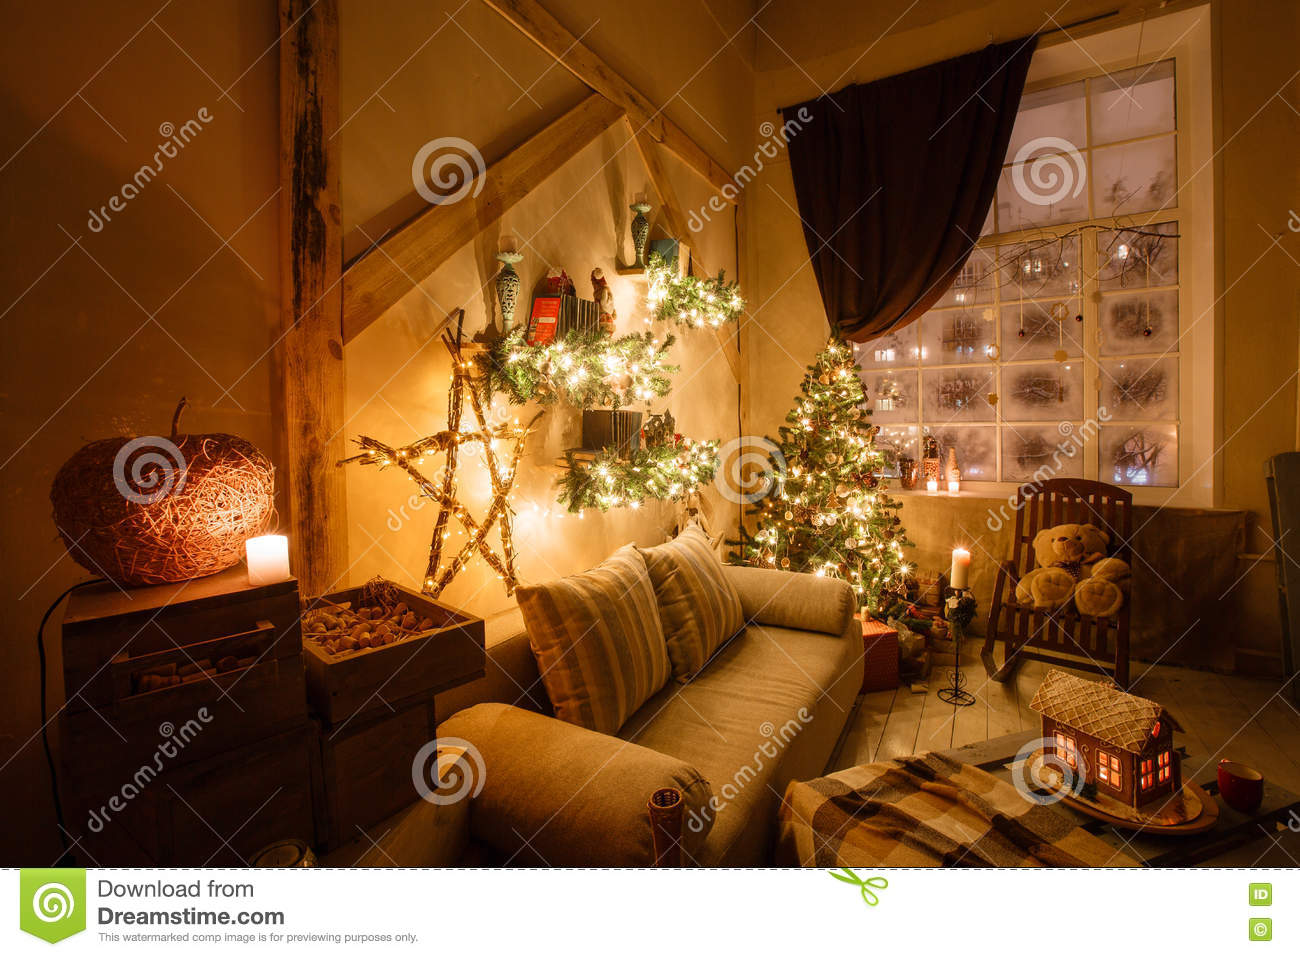 calm image of interior modern home living room decorated christmas tree and gifts sofa table covered with blanket